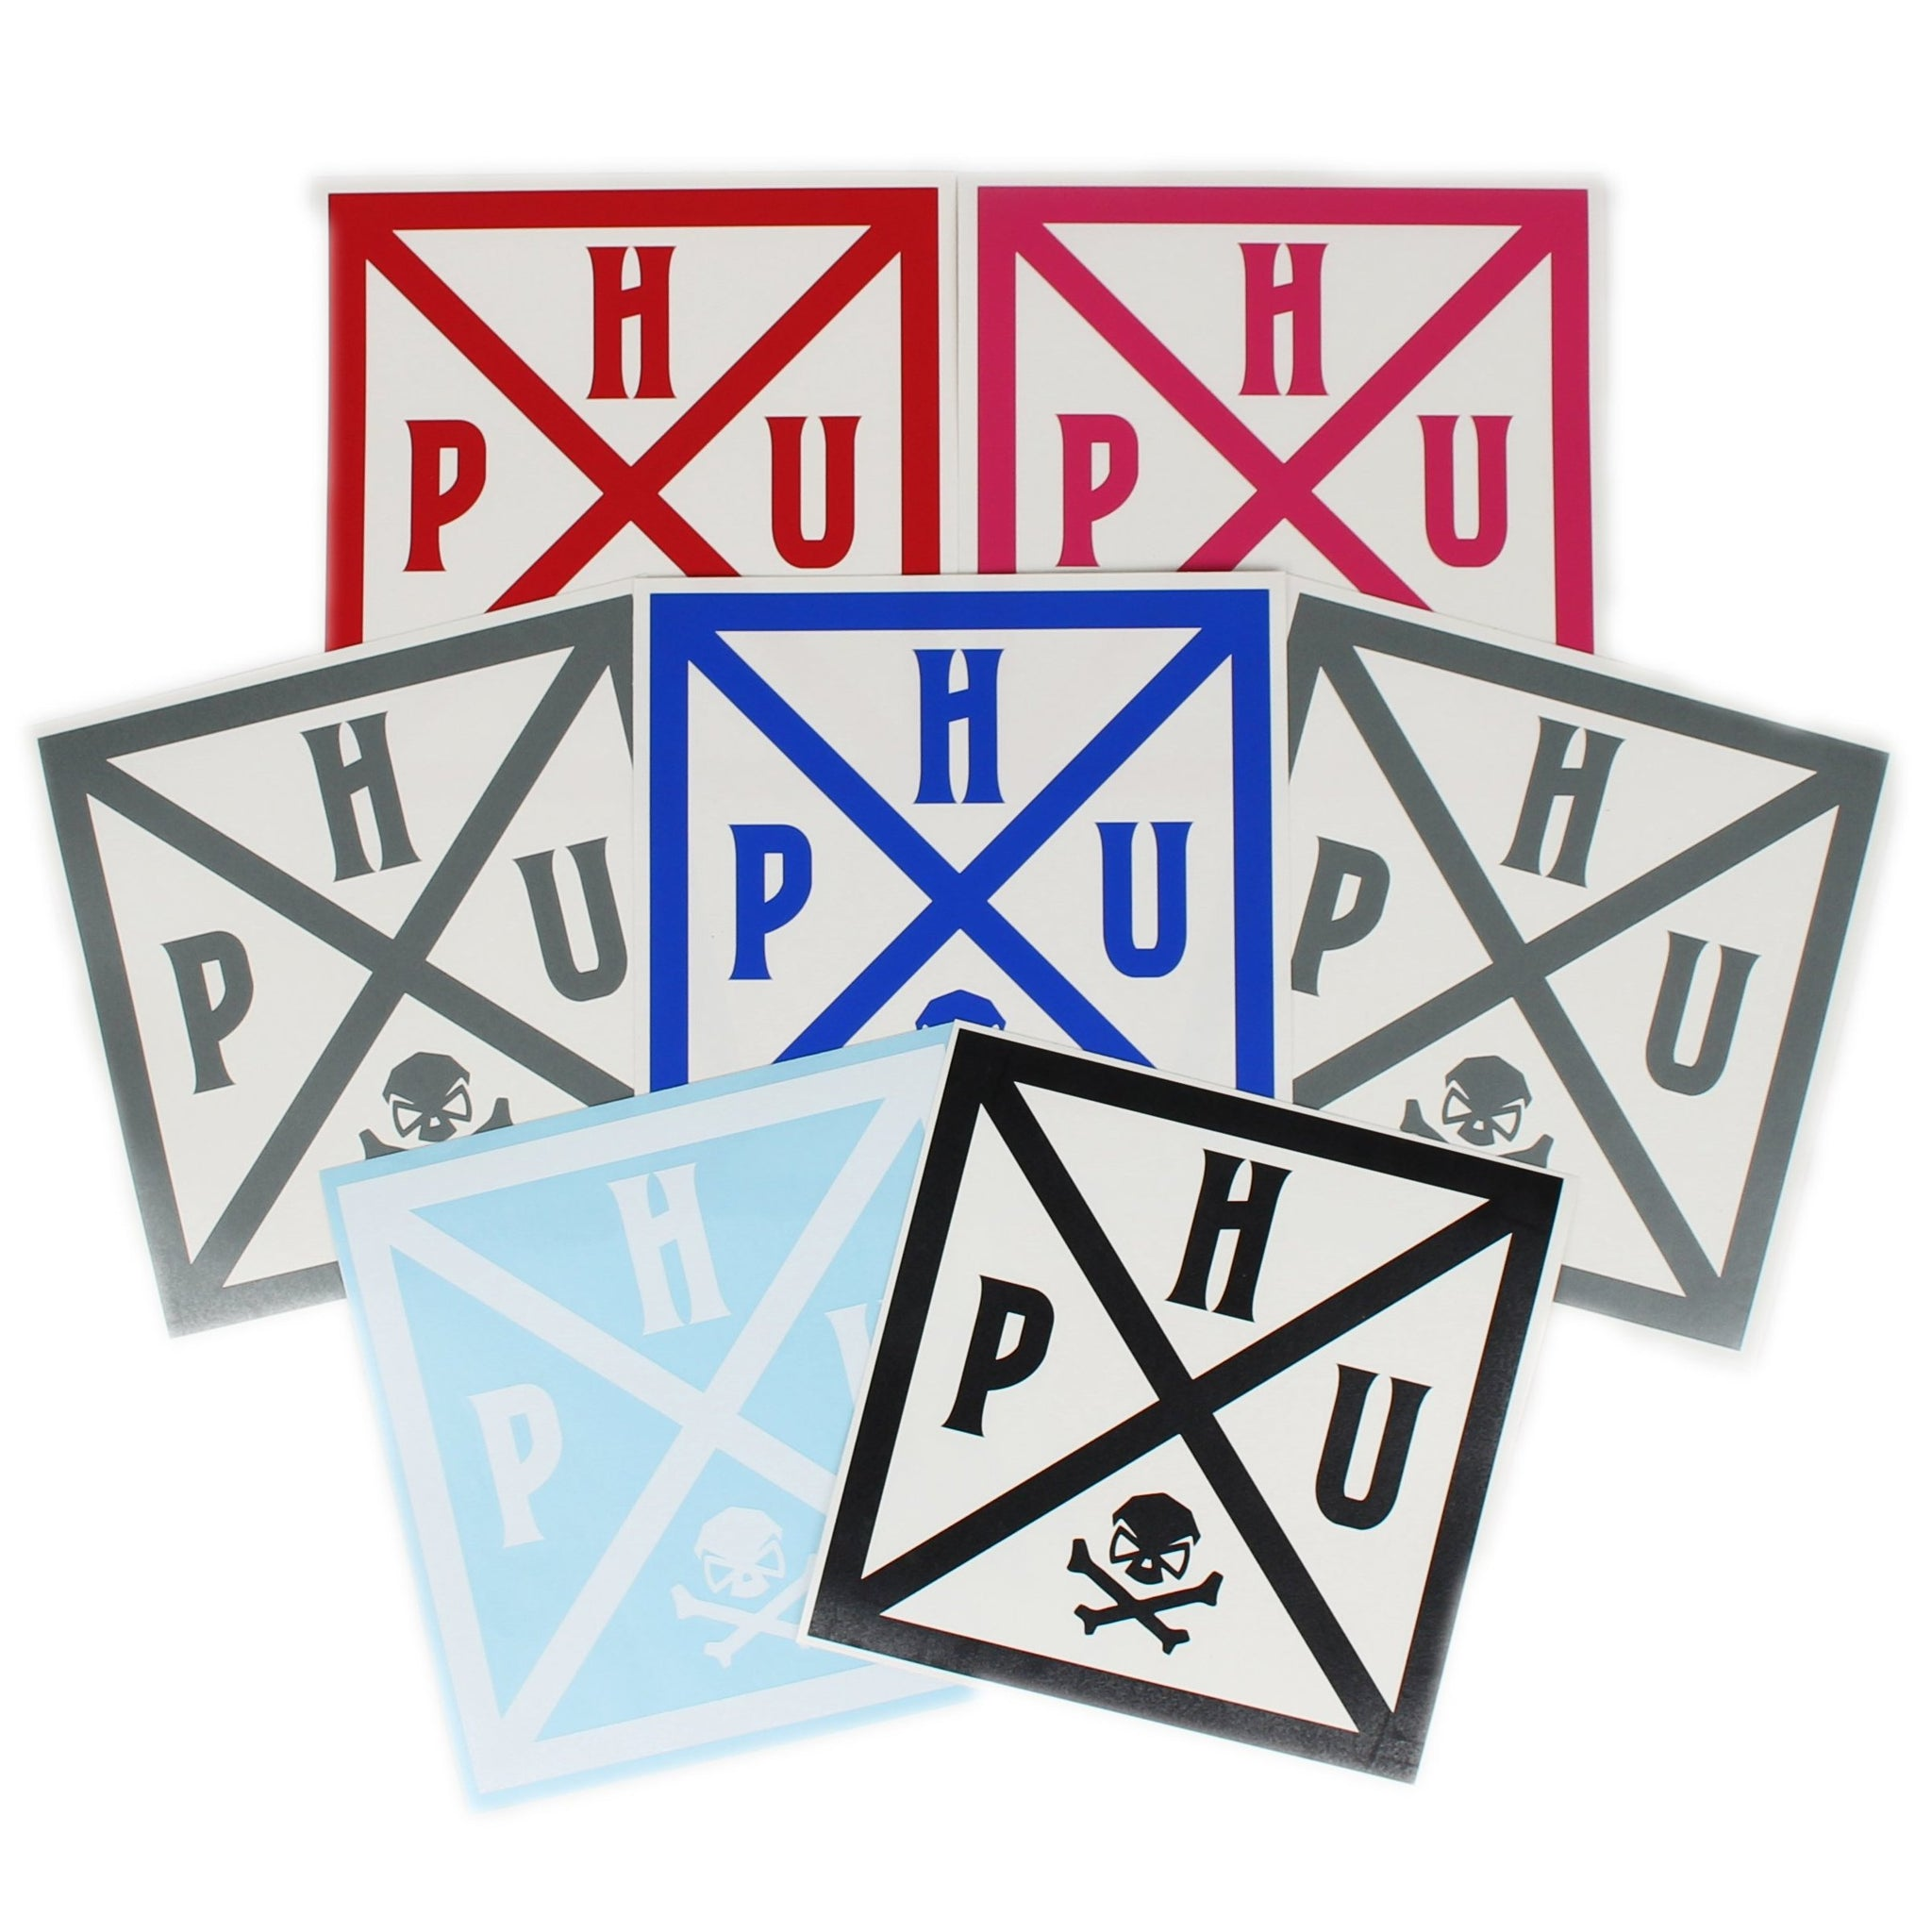 PHU Quad Shot - Decal -  - Decals - Pipe Hitters Union